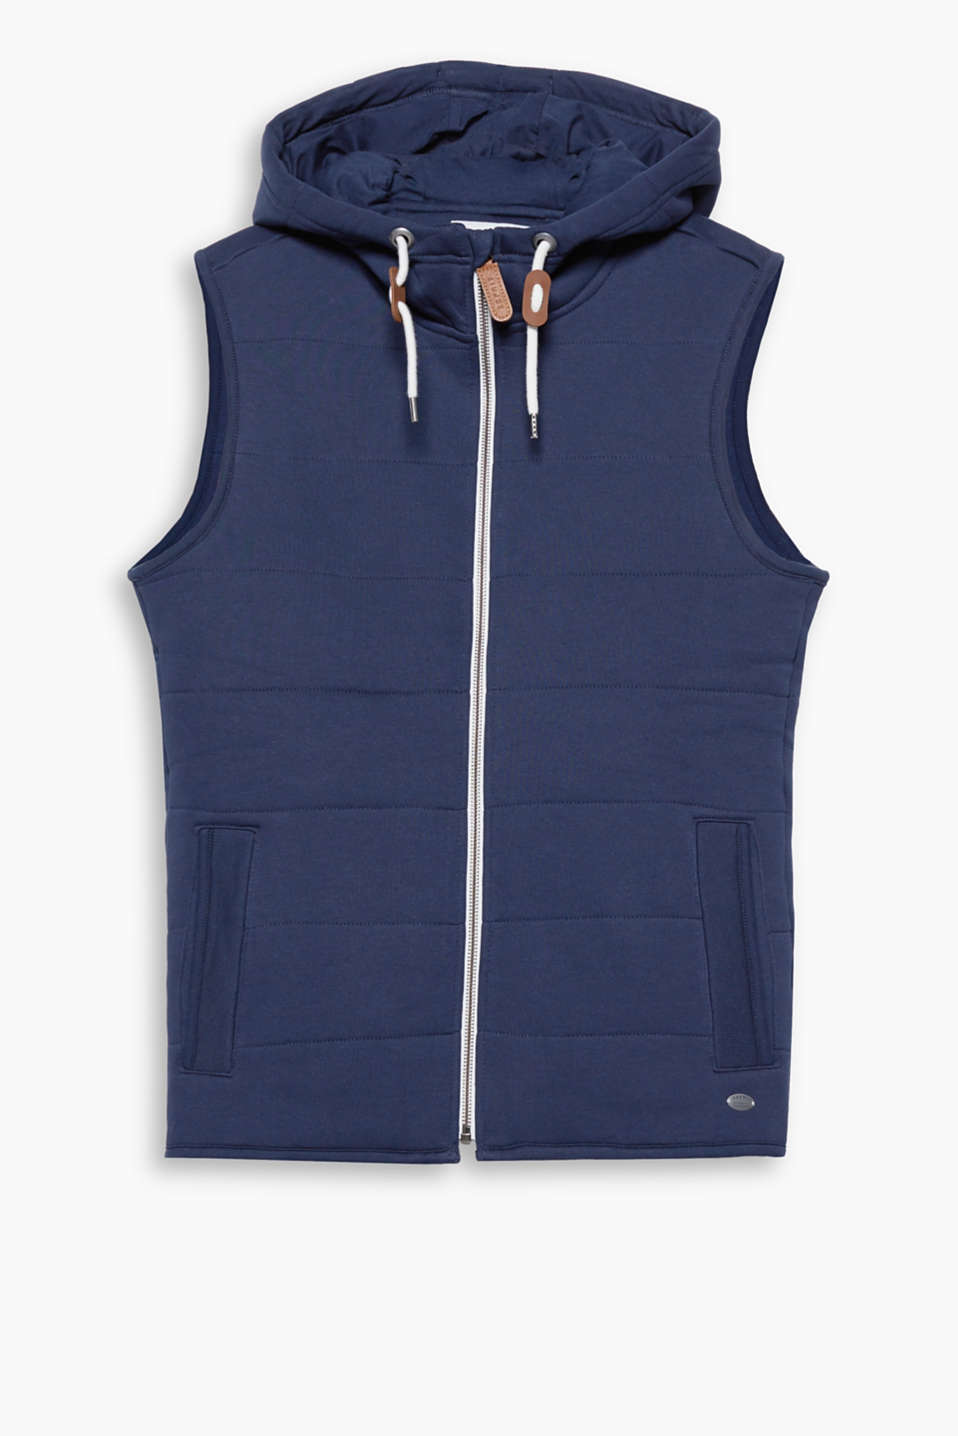 Casual for the cool, between-seasons period! Padded body warmer with a hood made of cotton sweatshirt fabric